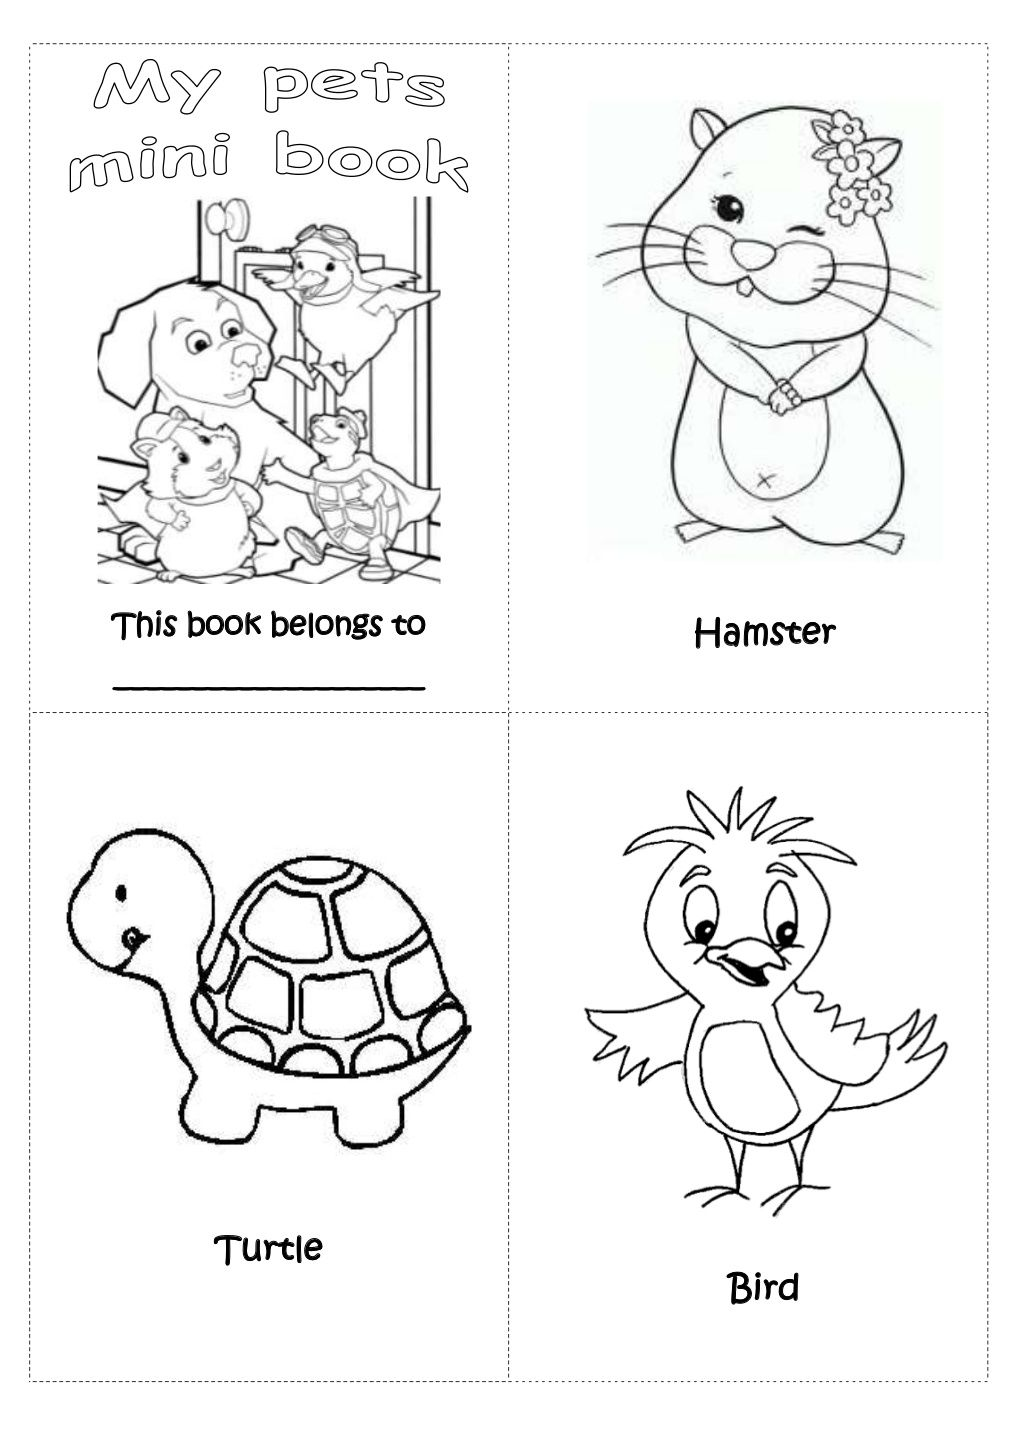 Pets Mini Book Preschool By Eraquelcq Via Slideshare